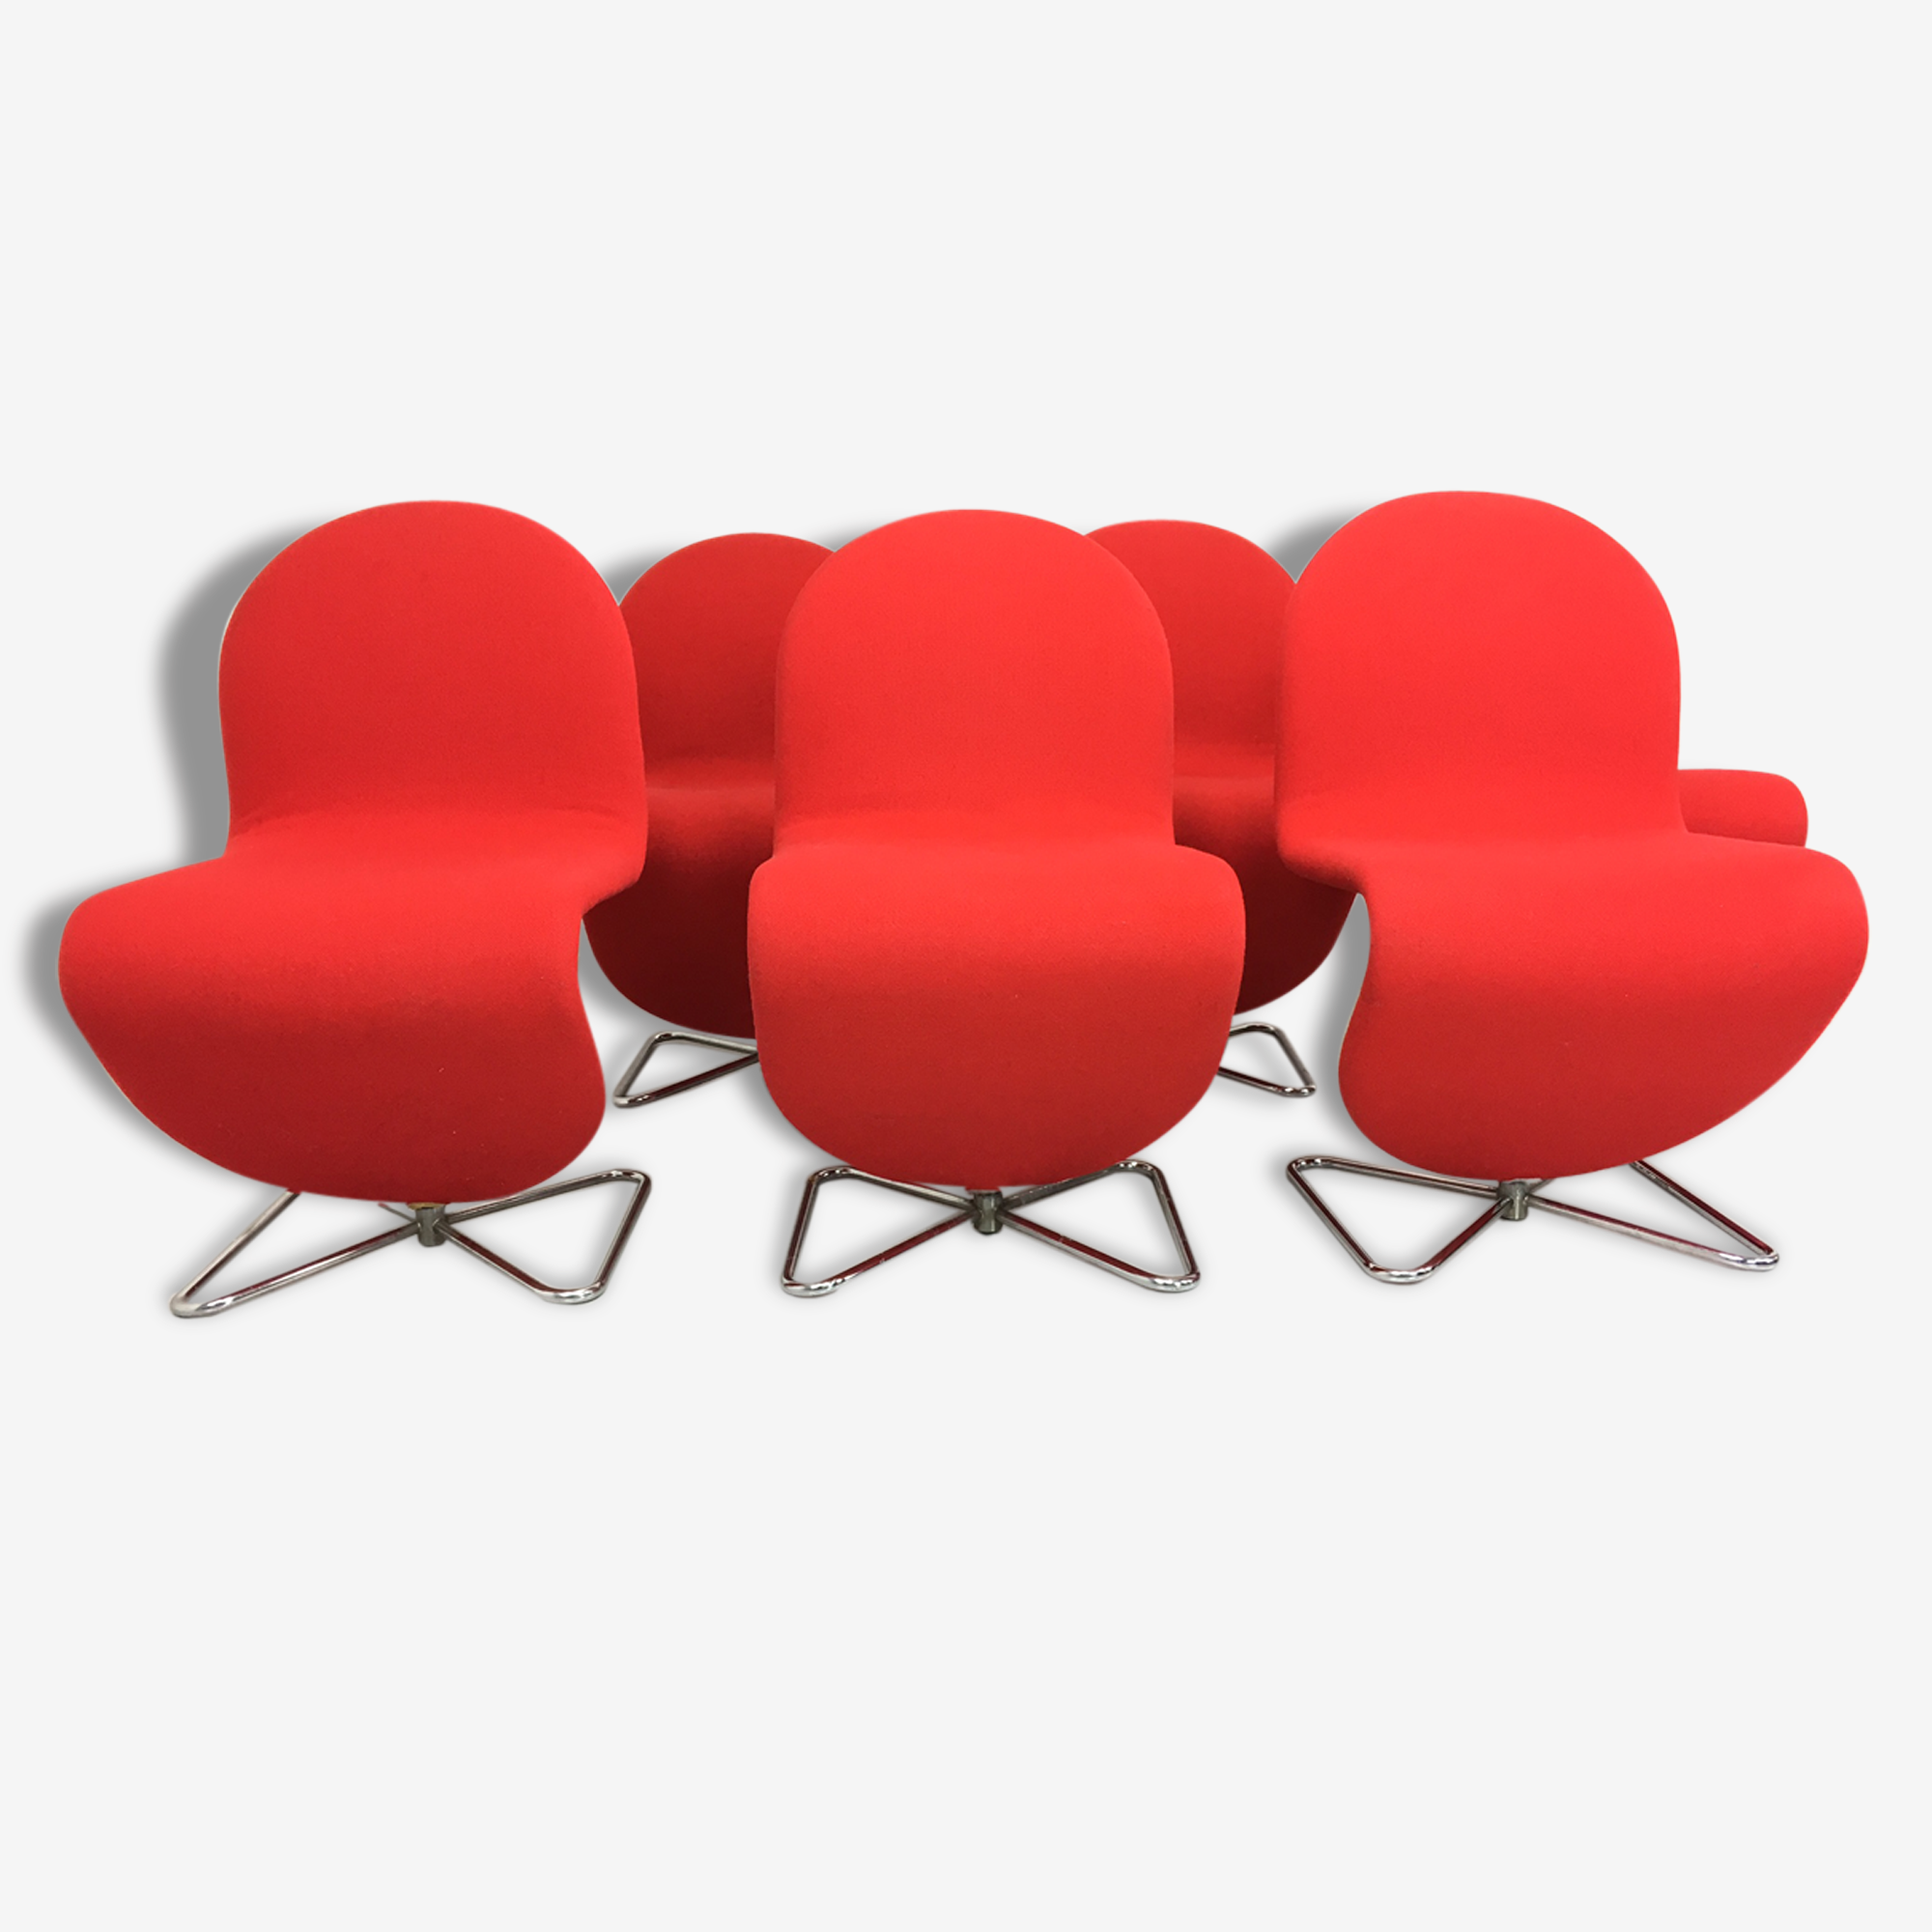 System 123 Chairs by Verner Panton for Fritz Hansen, 1973, Set of 4